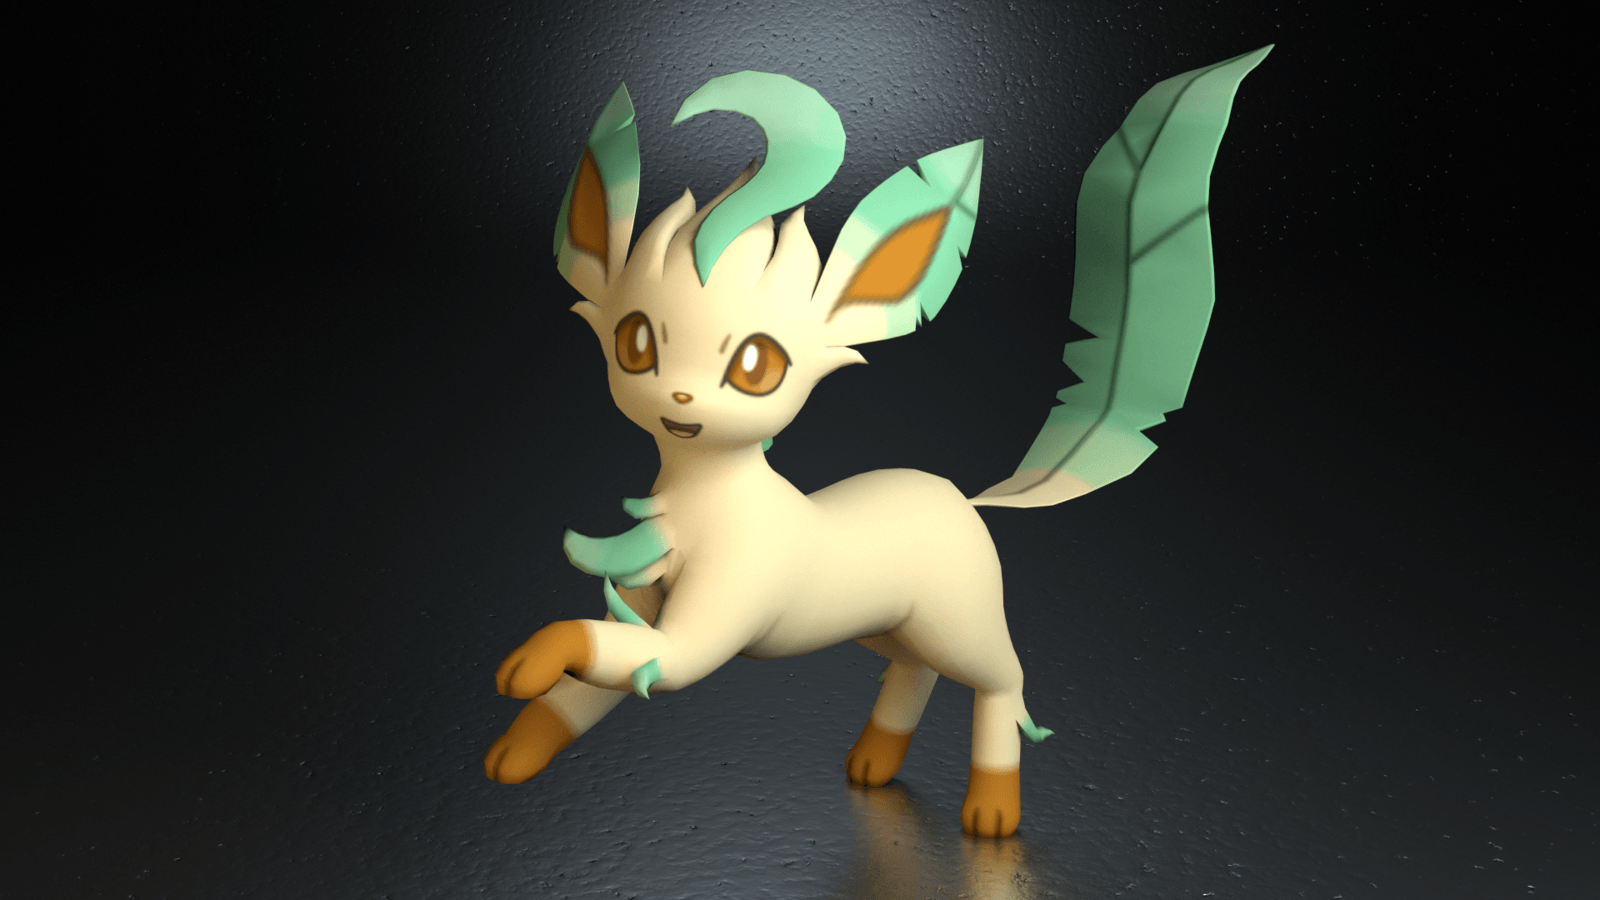 1600x900 470. Leafeon by TheAdorableOshawott on DeviantArt